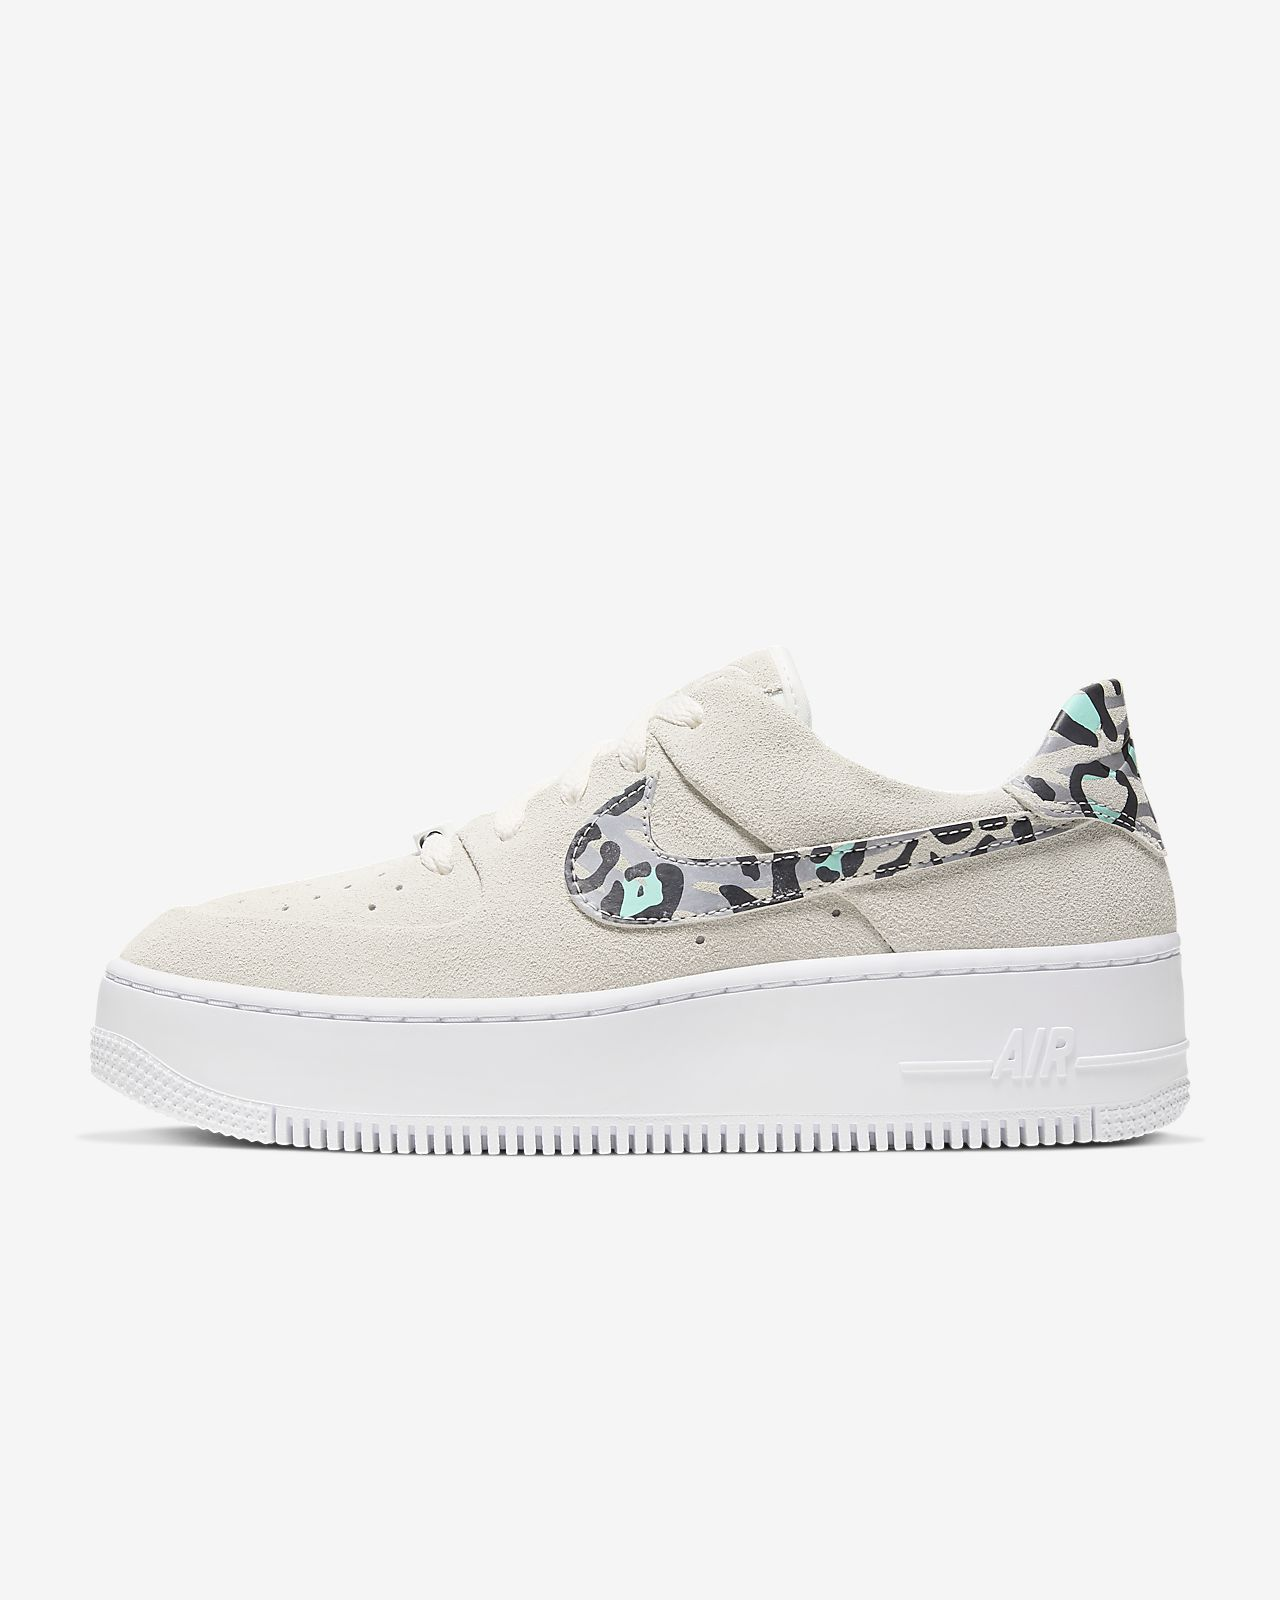 Zapatillas AIR FORCE 1 SAGE white Nike Sportswear Plataforma